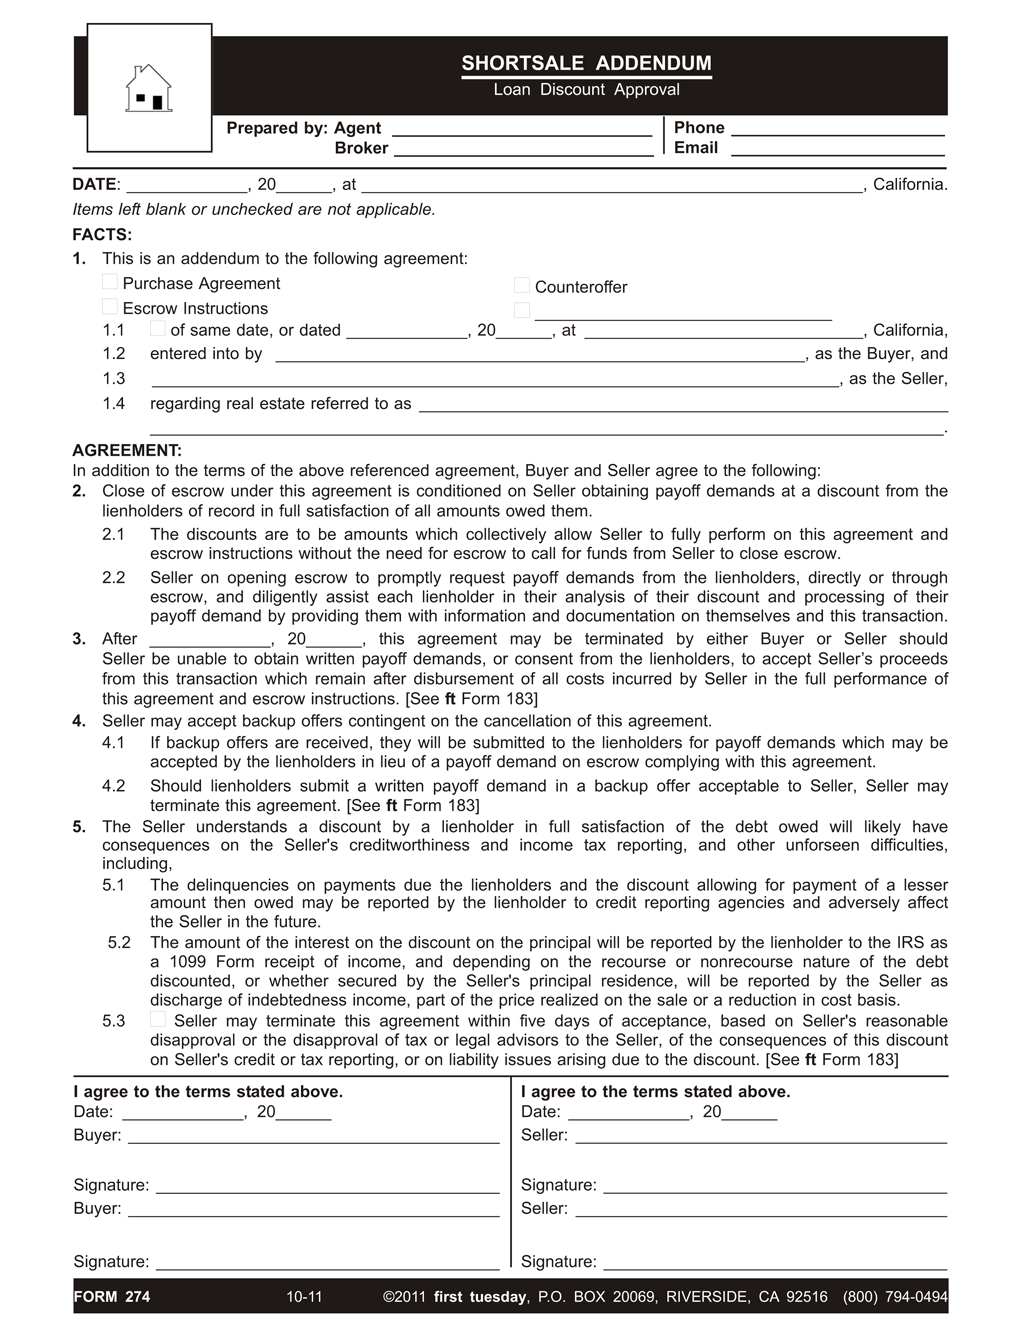 The Short Sale Purchase Agreement Boilerplate Agreement Or As An